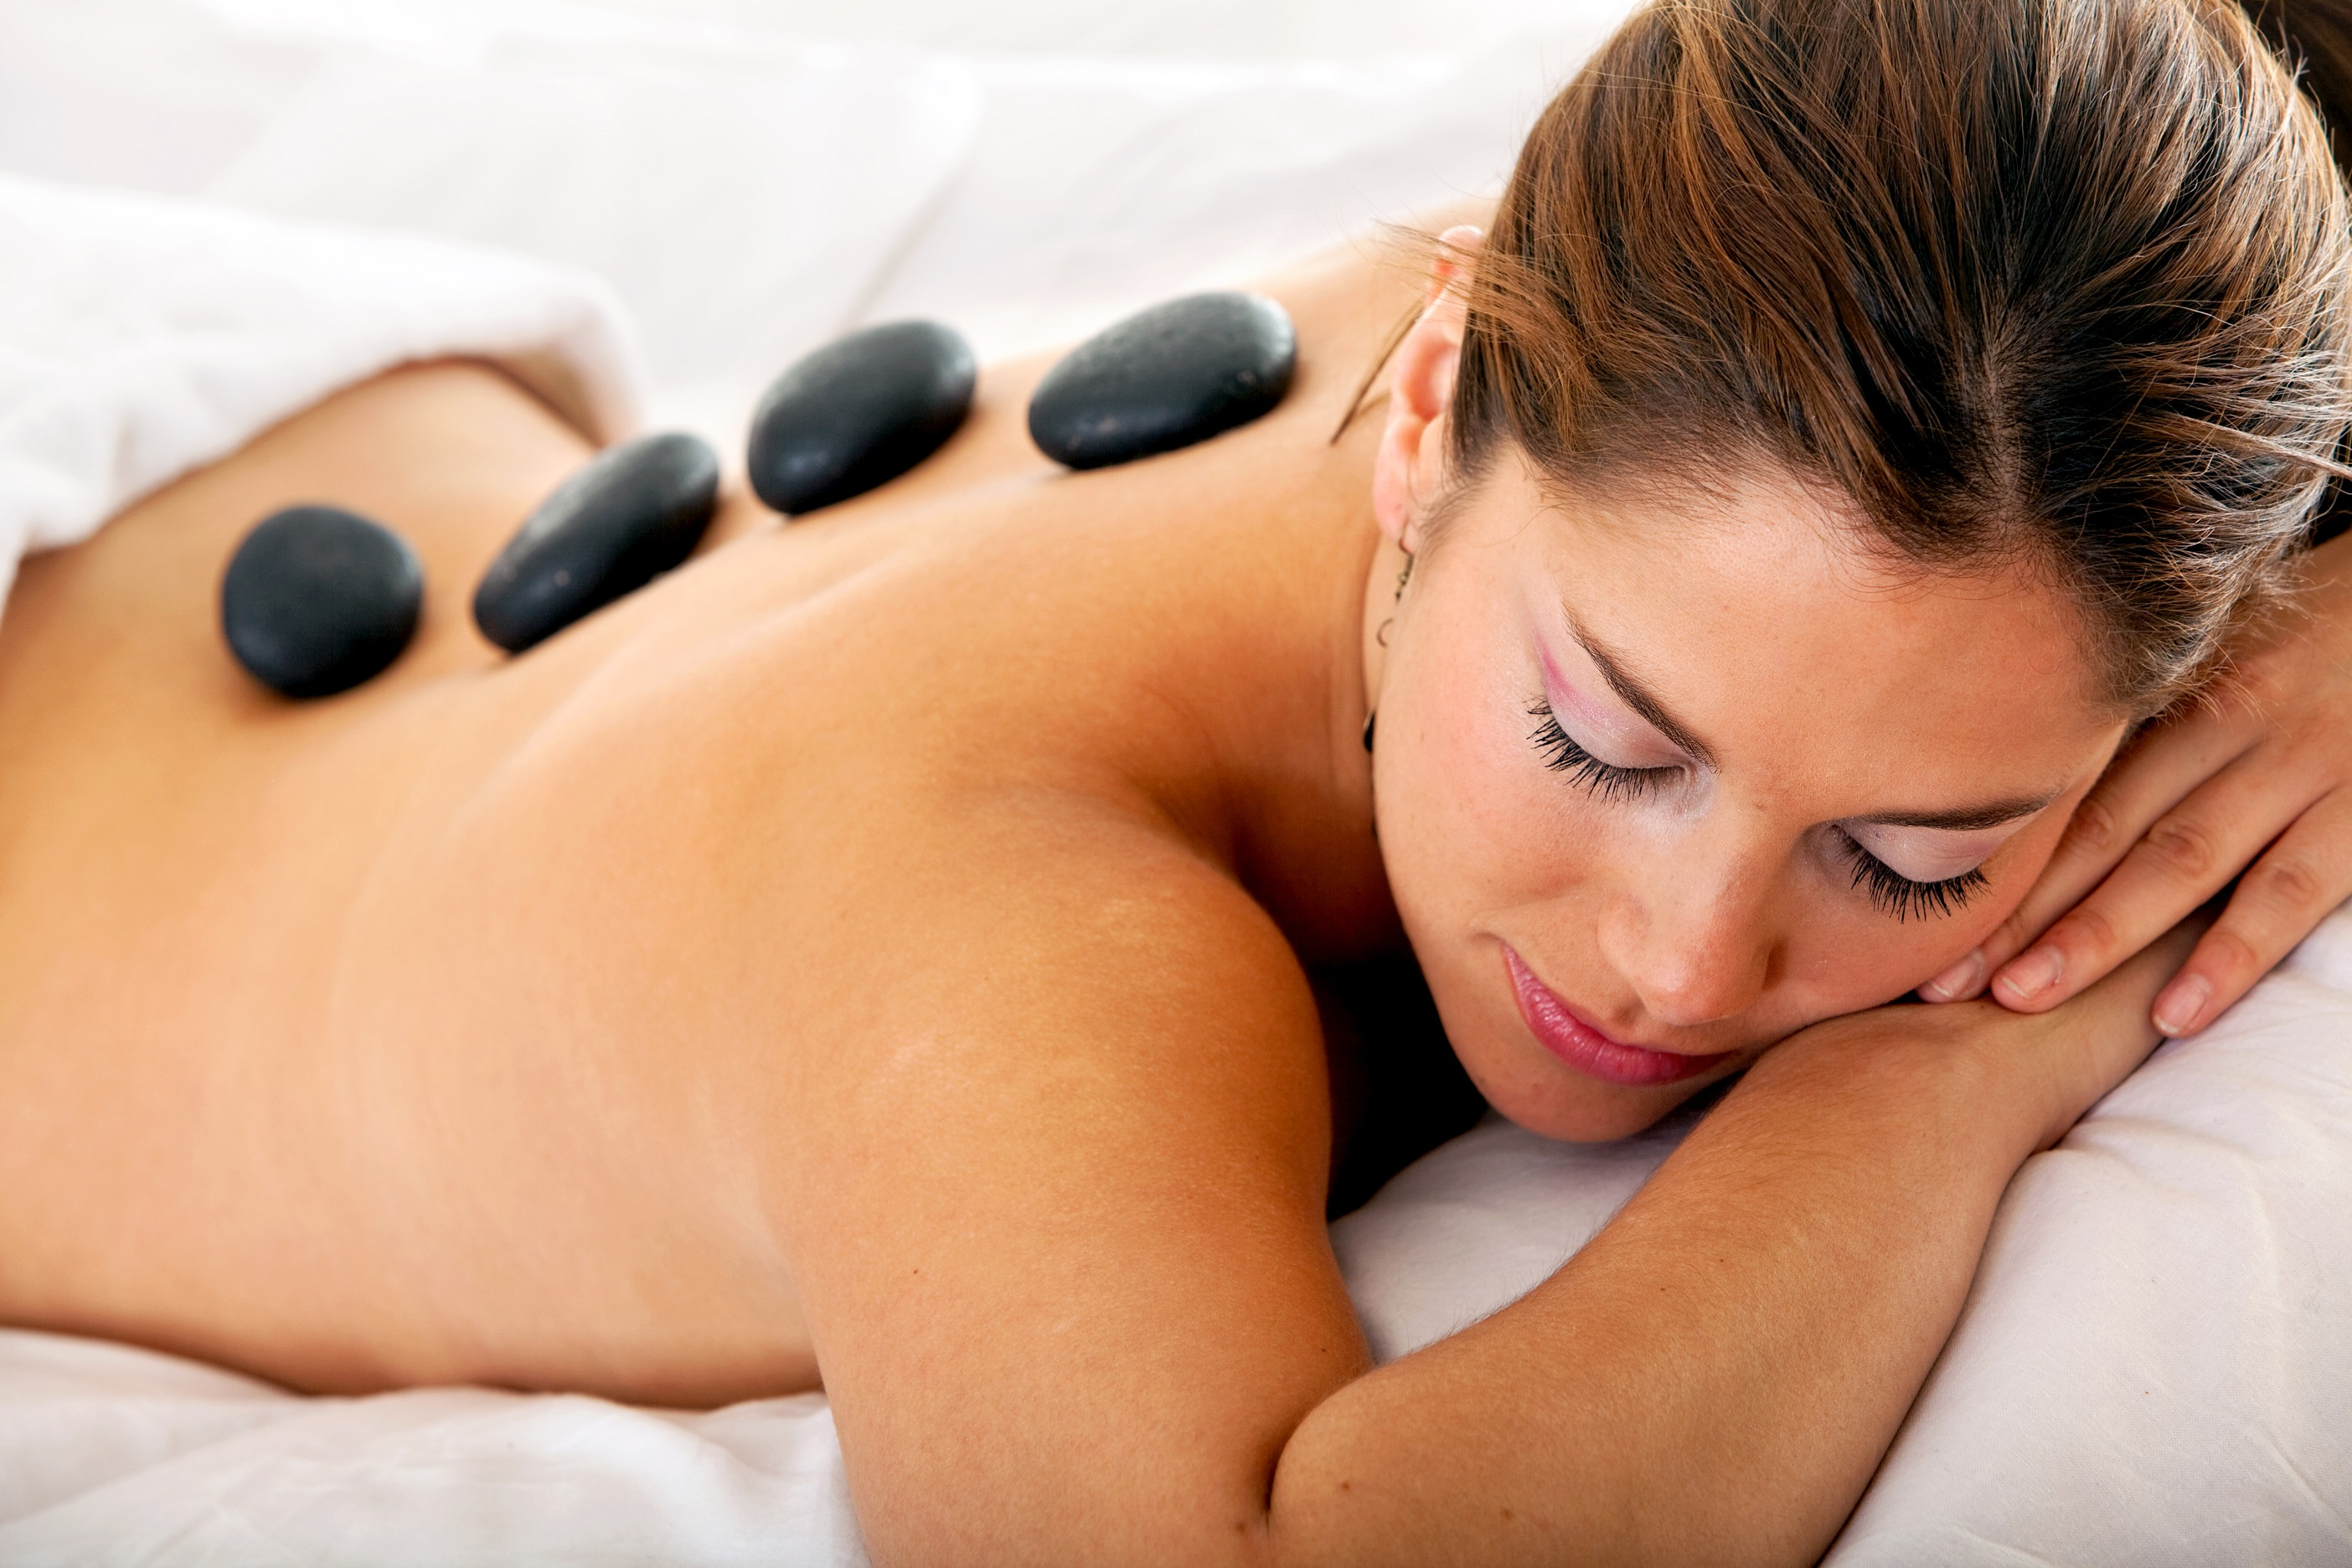 The different massages for women